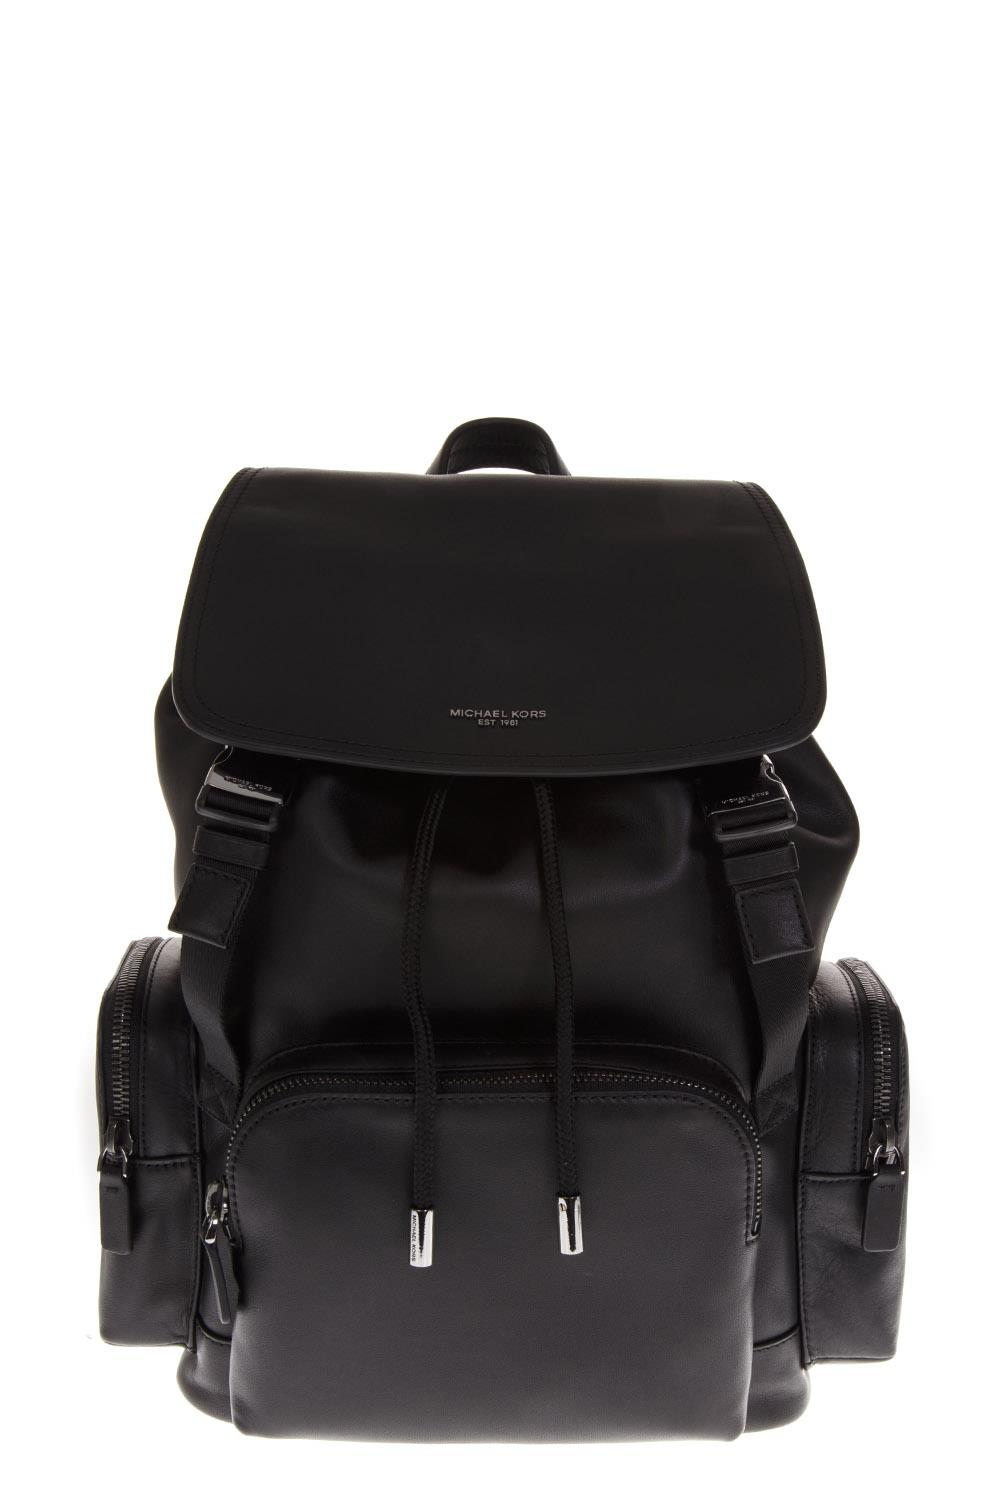 15a466d94893 HENRY BLACK LEATHER BACKPACK FW 2018 - MICHAEL MICHAEL KORS - Boutique  Galiano